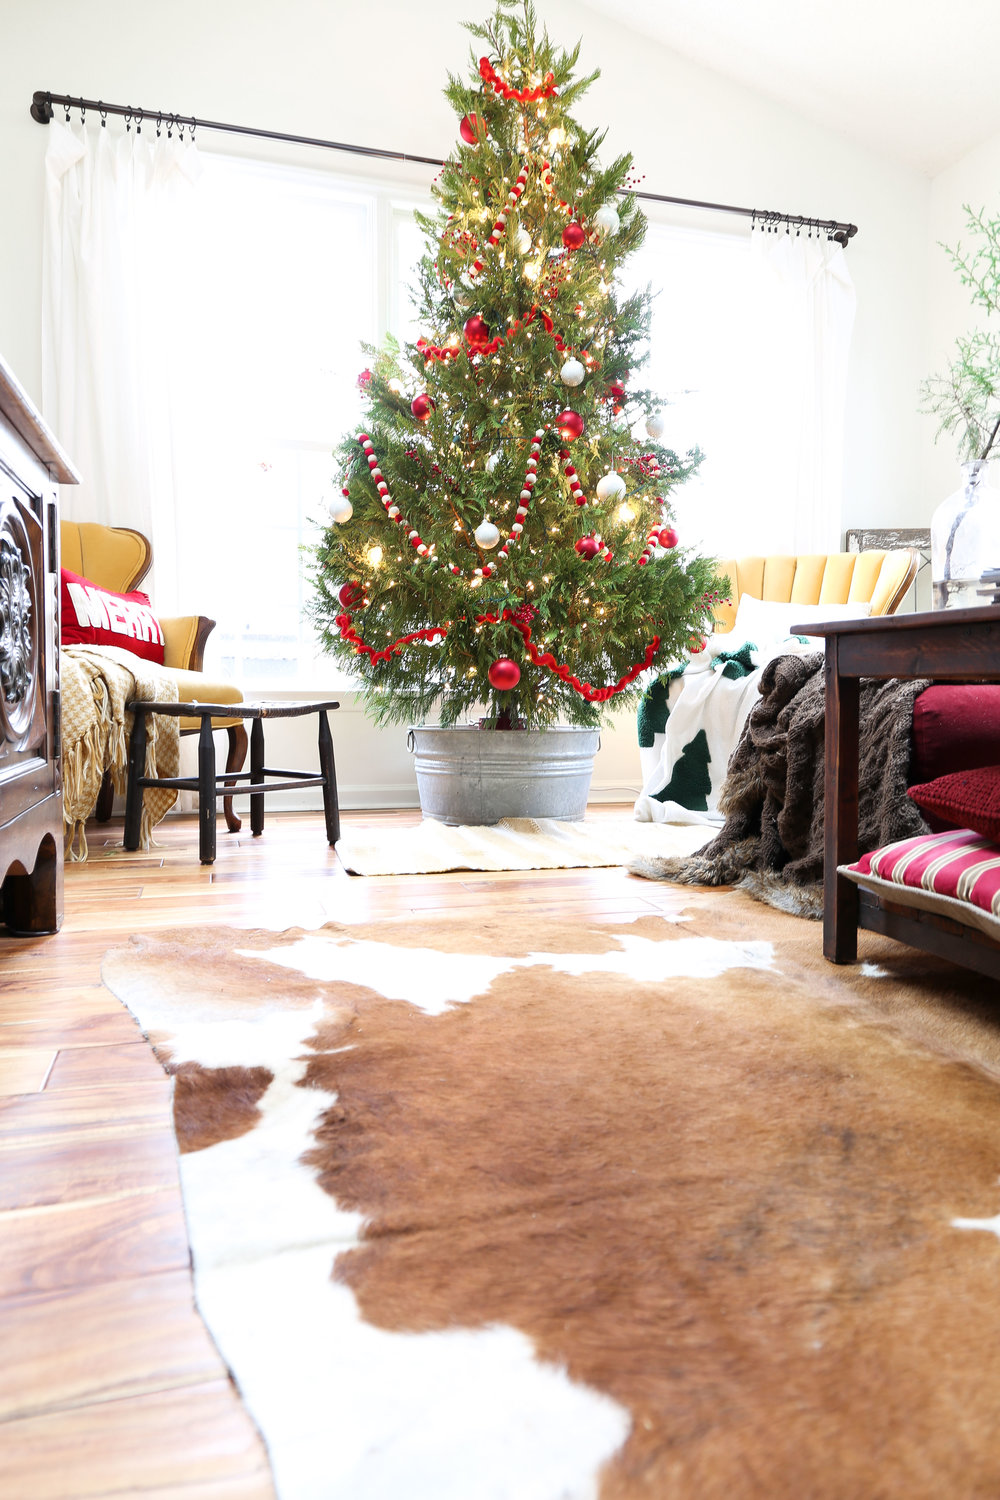 Christmas Family Room with Cow Skin Rug and Simple Christmas Tree- By Plum Pretty Decor and Design